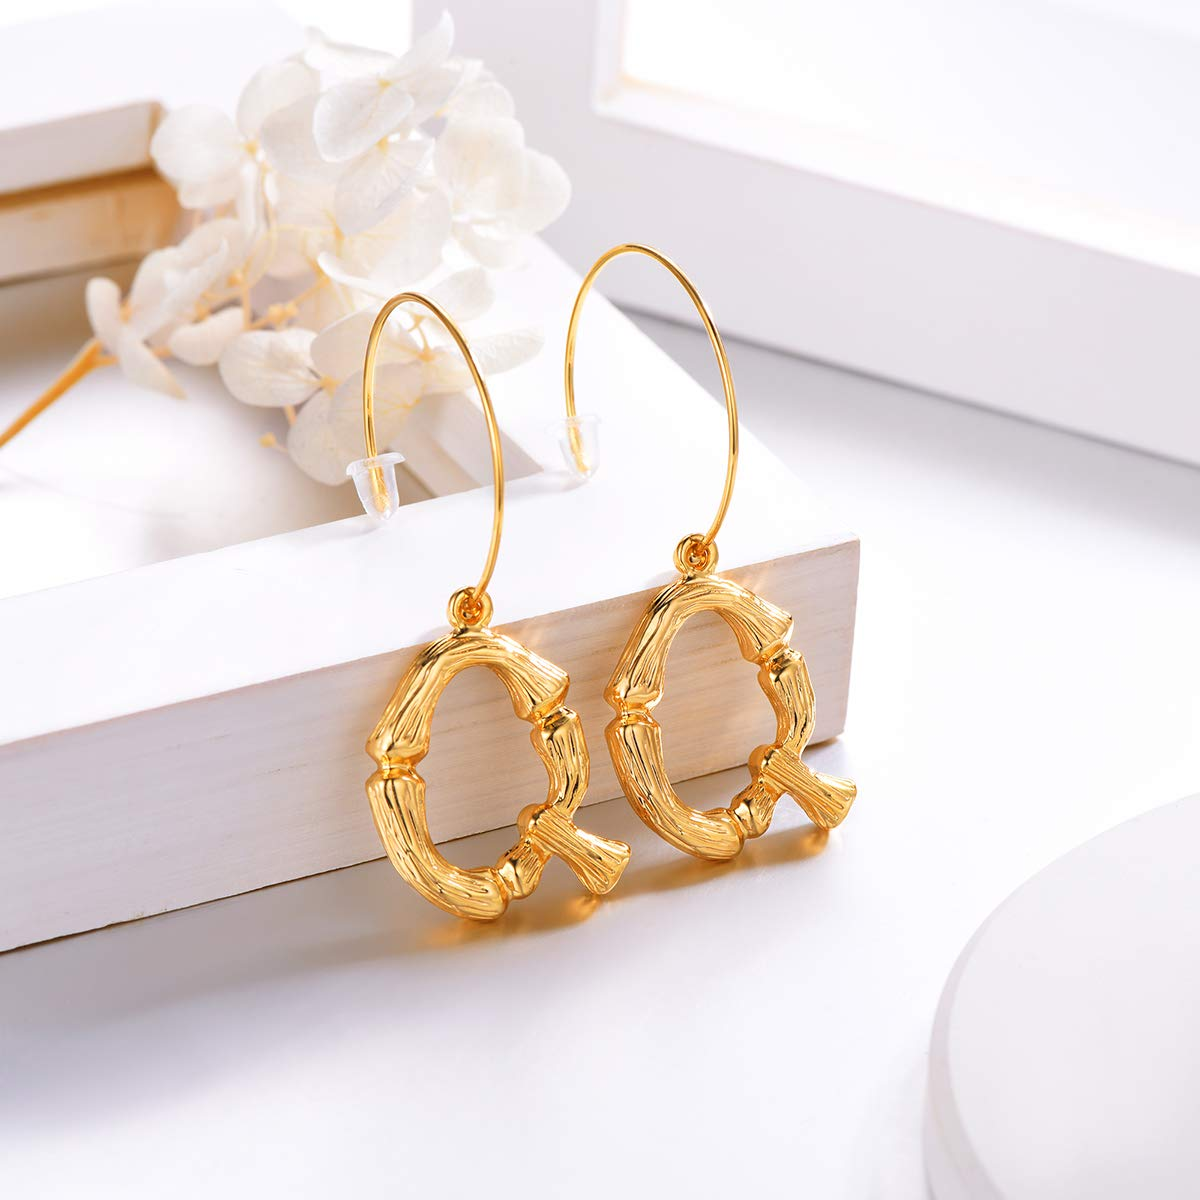 FOCALOOK Letter Earrings Semi-Hoop Drop Dangle Capital Alphabet Small Charms Fashion Jewelry Open Half Circle Round Wire 18K Gold Plated Metal Alloy Bamboo Initial Earrings for Women Girls